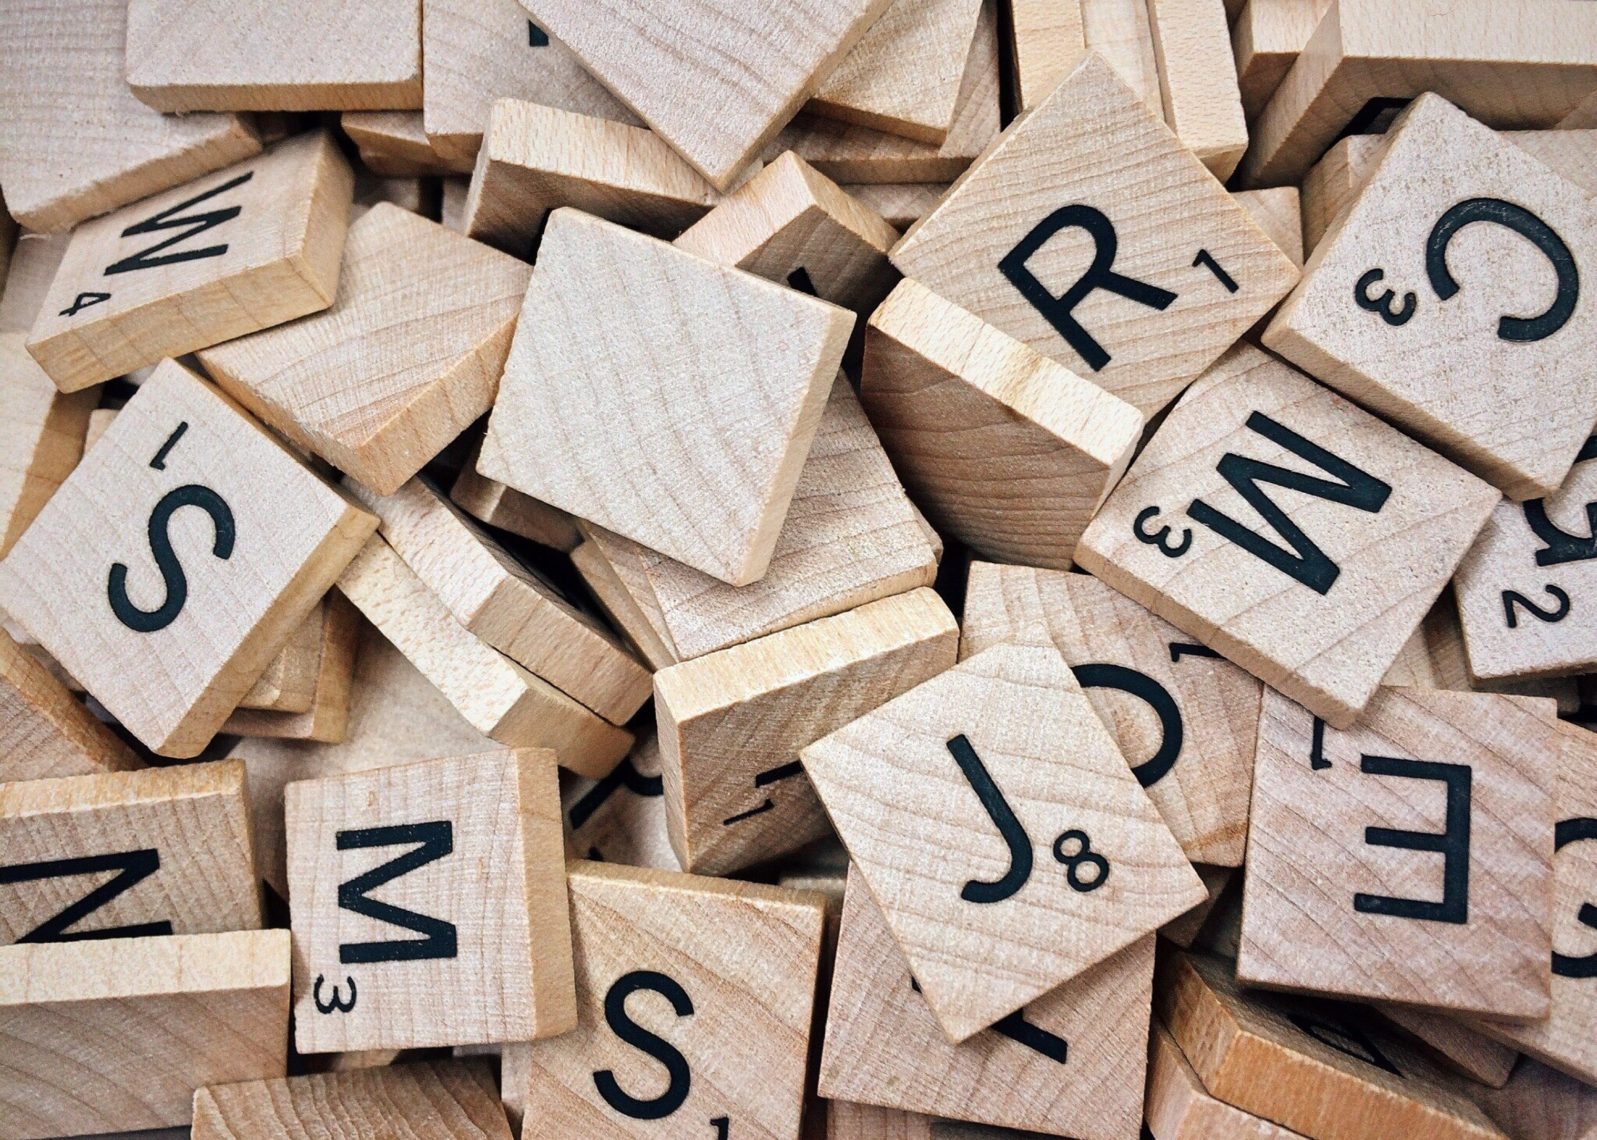 Scrabble pieces with numbers and letters